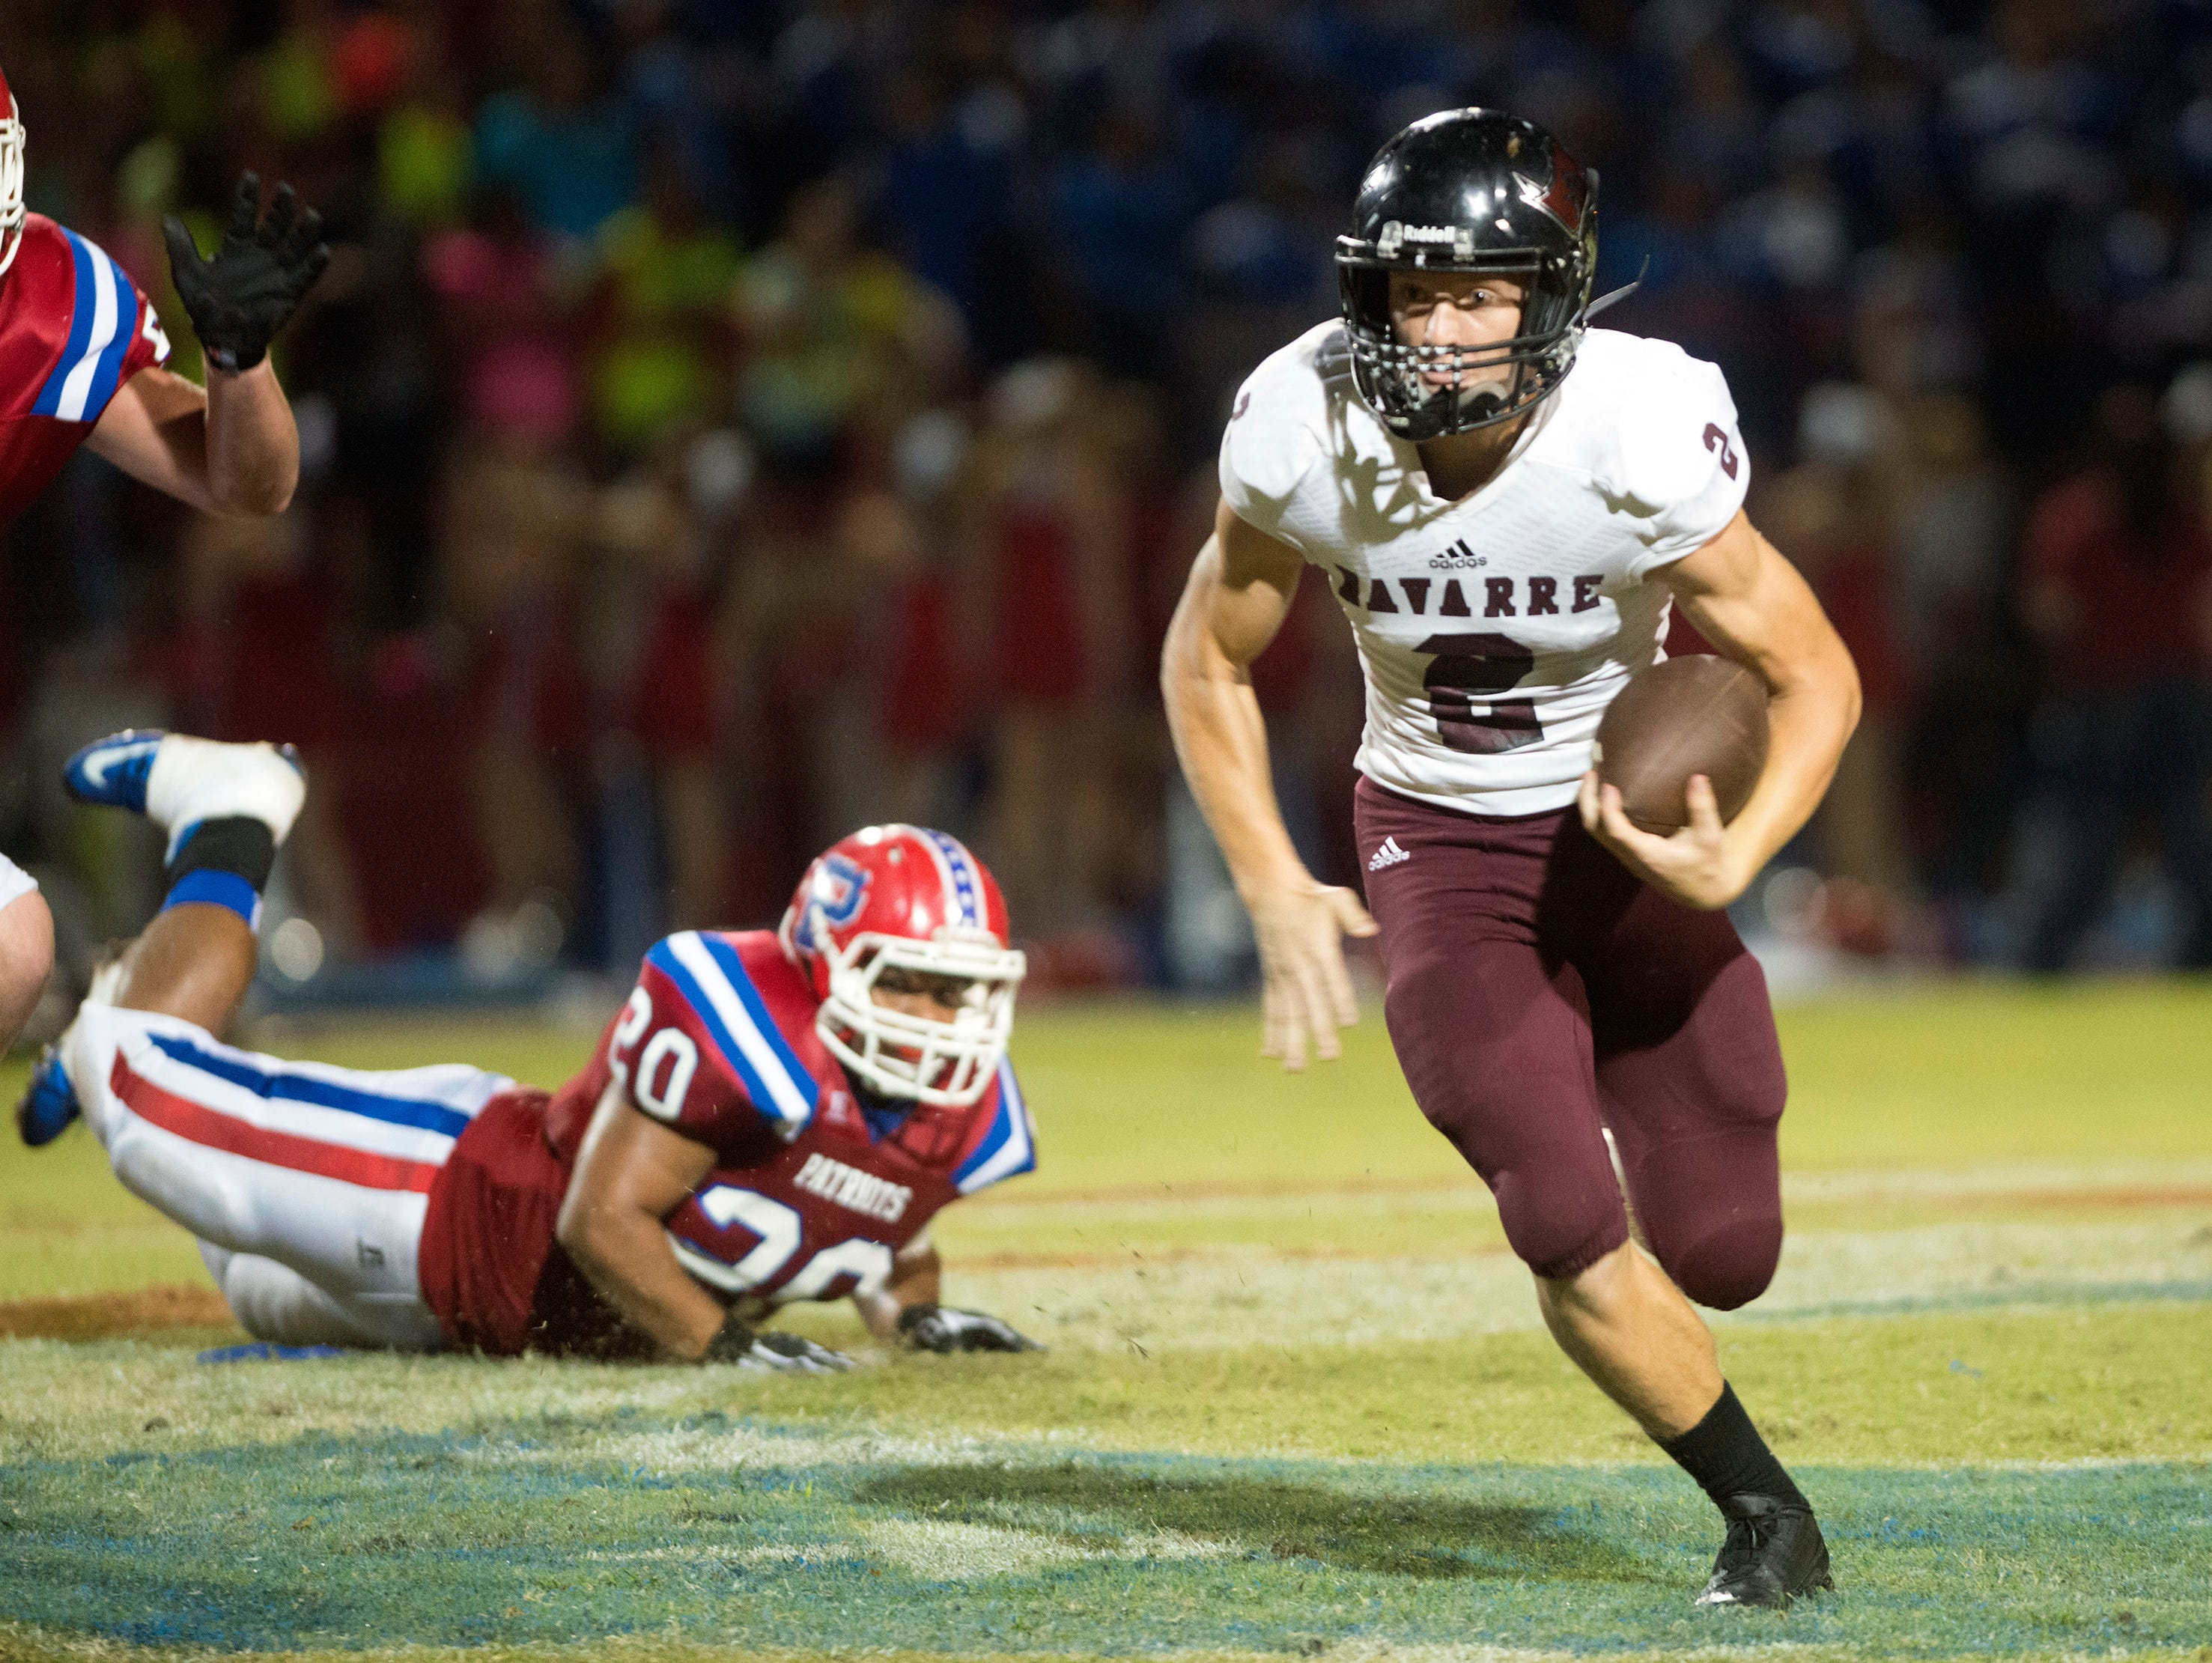 Navarre High School quarterback, Caine Adamson, (No. 2) slips out of the packet to runs for 1st down against the Pace High School defense during Friday night's District 2-6A game.